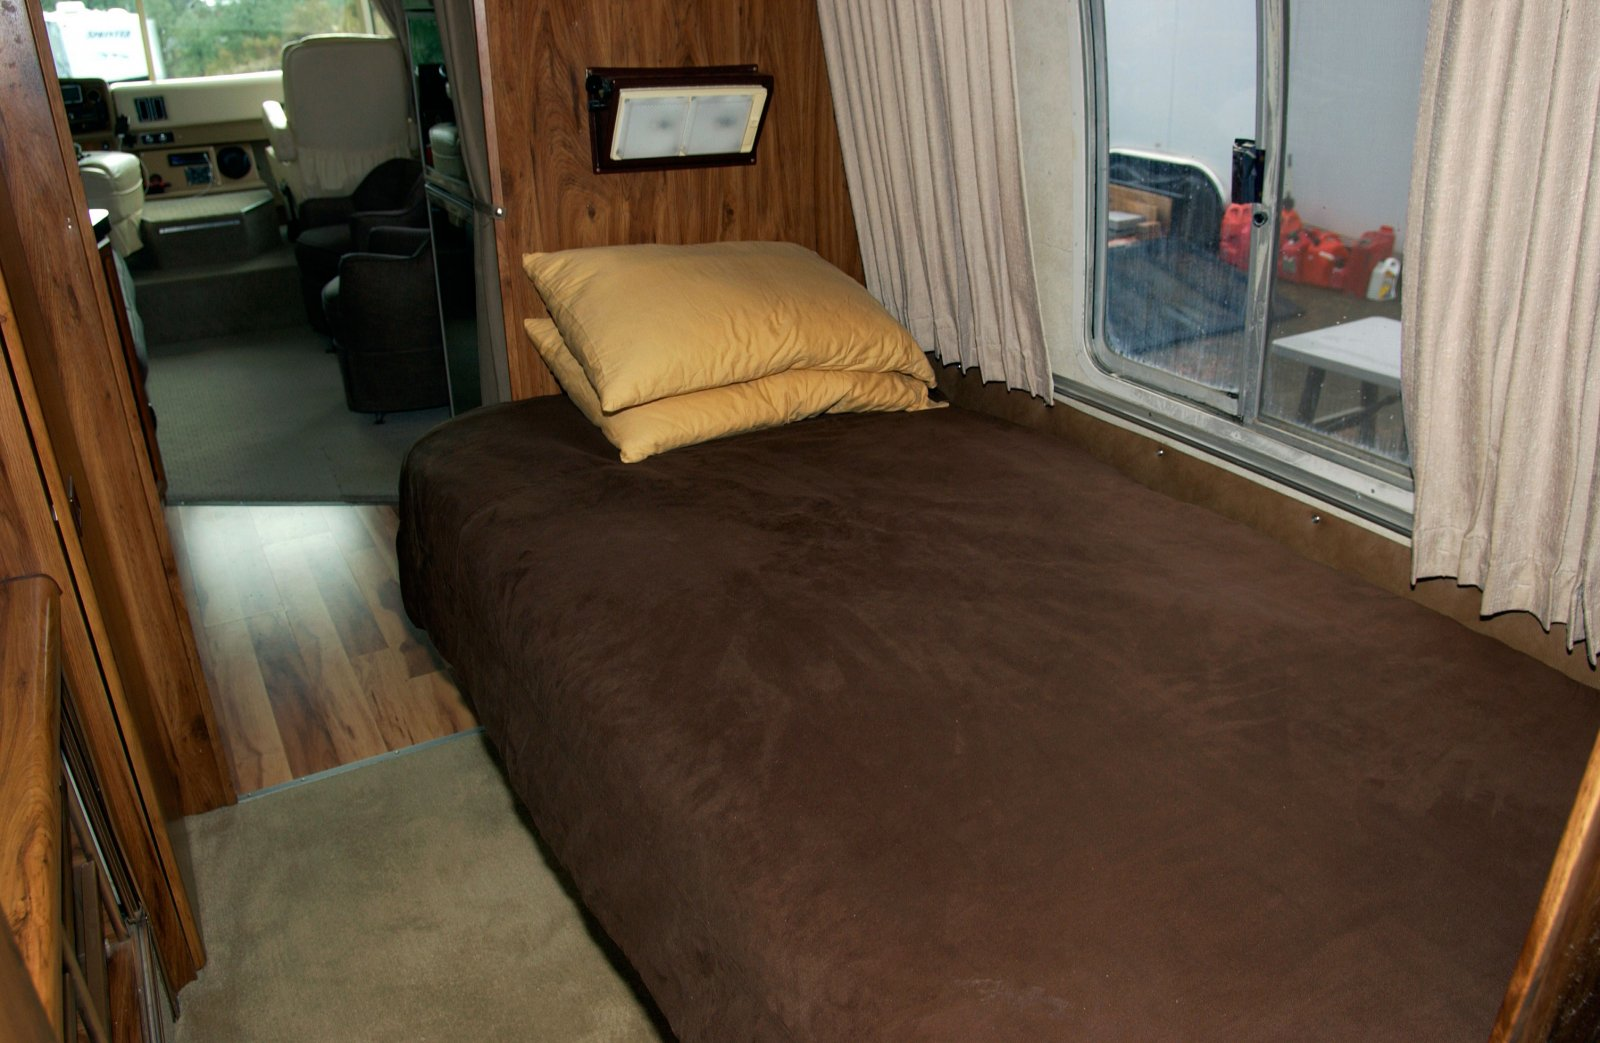 Click image for larger version  Name:Bed-web.jpg Views:87 Size:231.6 KB ID:225297